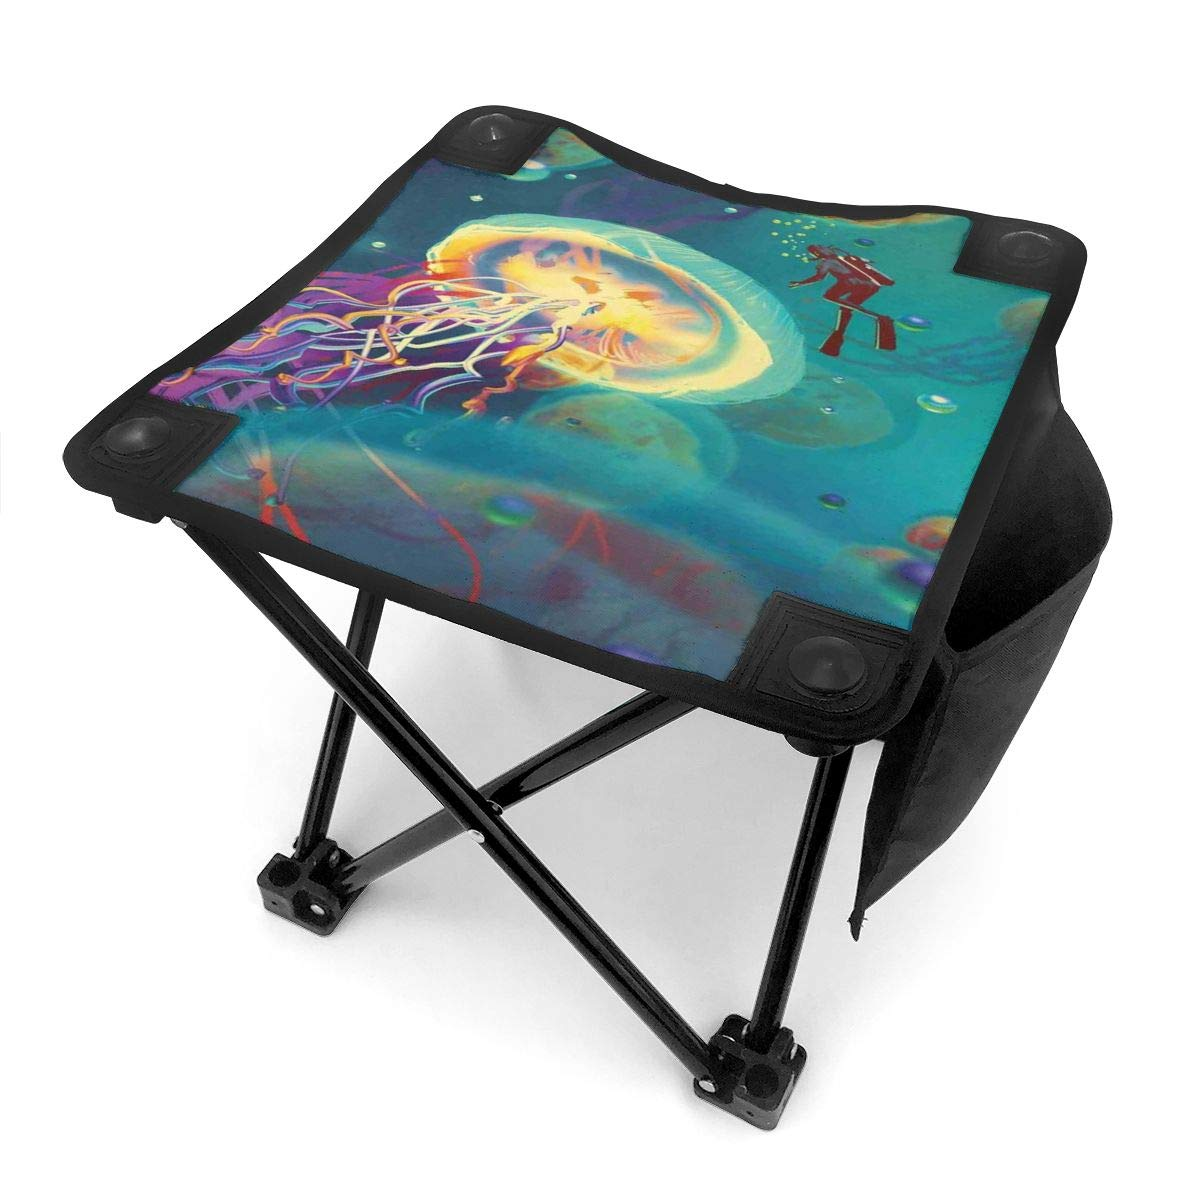 Folding Camping Stool Portable Outdoor Mini Chair Small Seat,Giant Jellyfish and Diver in The Sea Underwater Submarine Aquatic Artwork Print,Barbeque Stool for Fishing BBQ Beach,Travel by Jolly2T